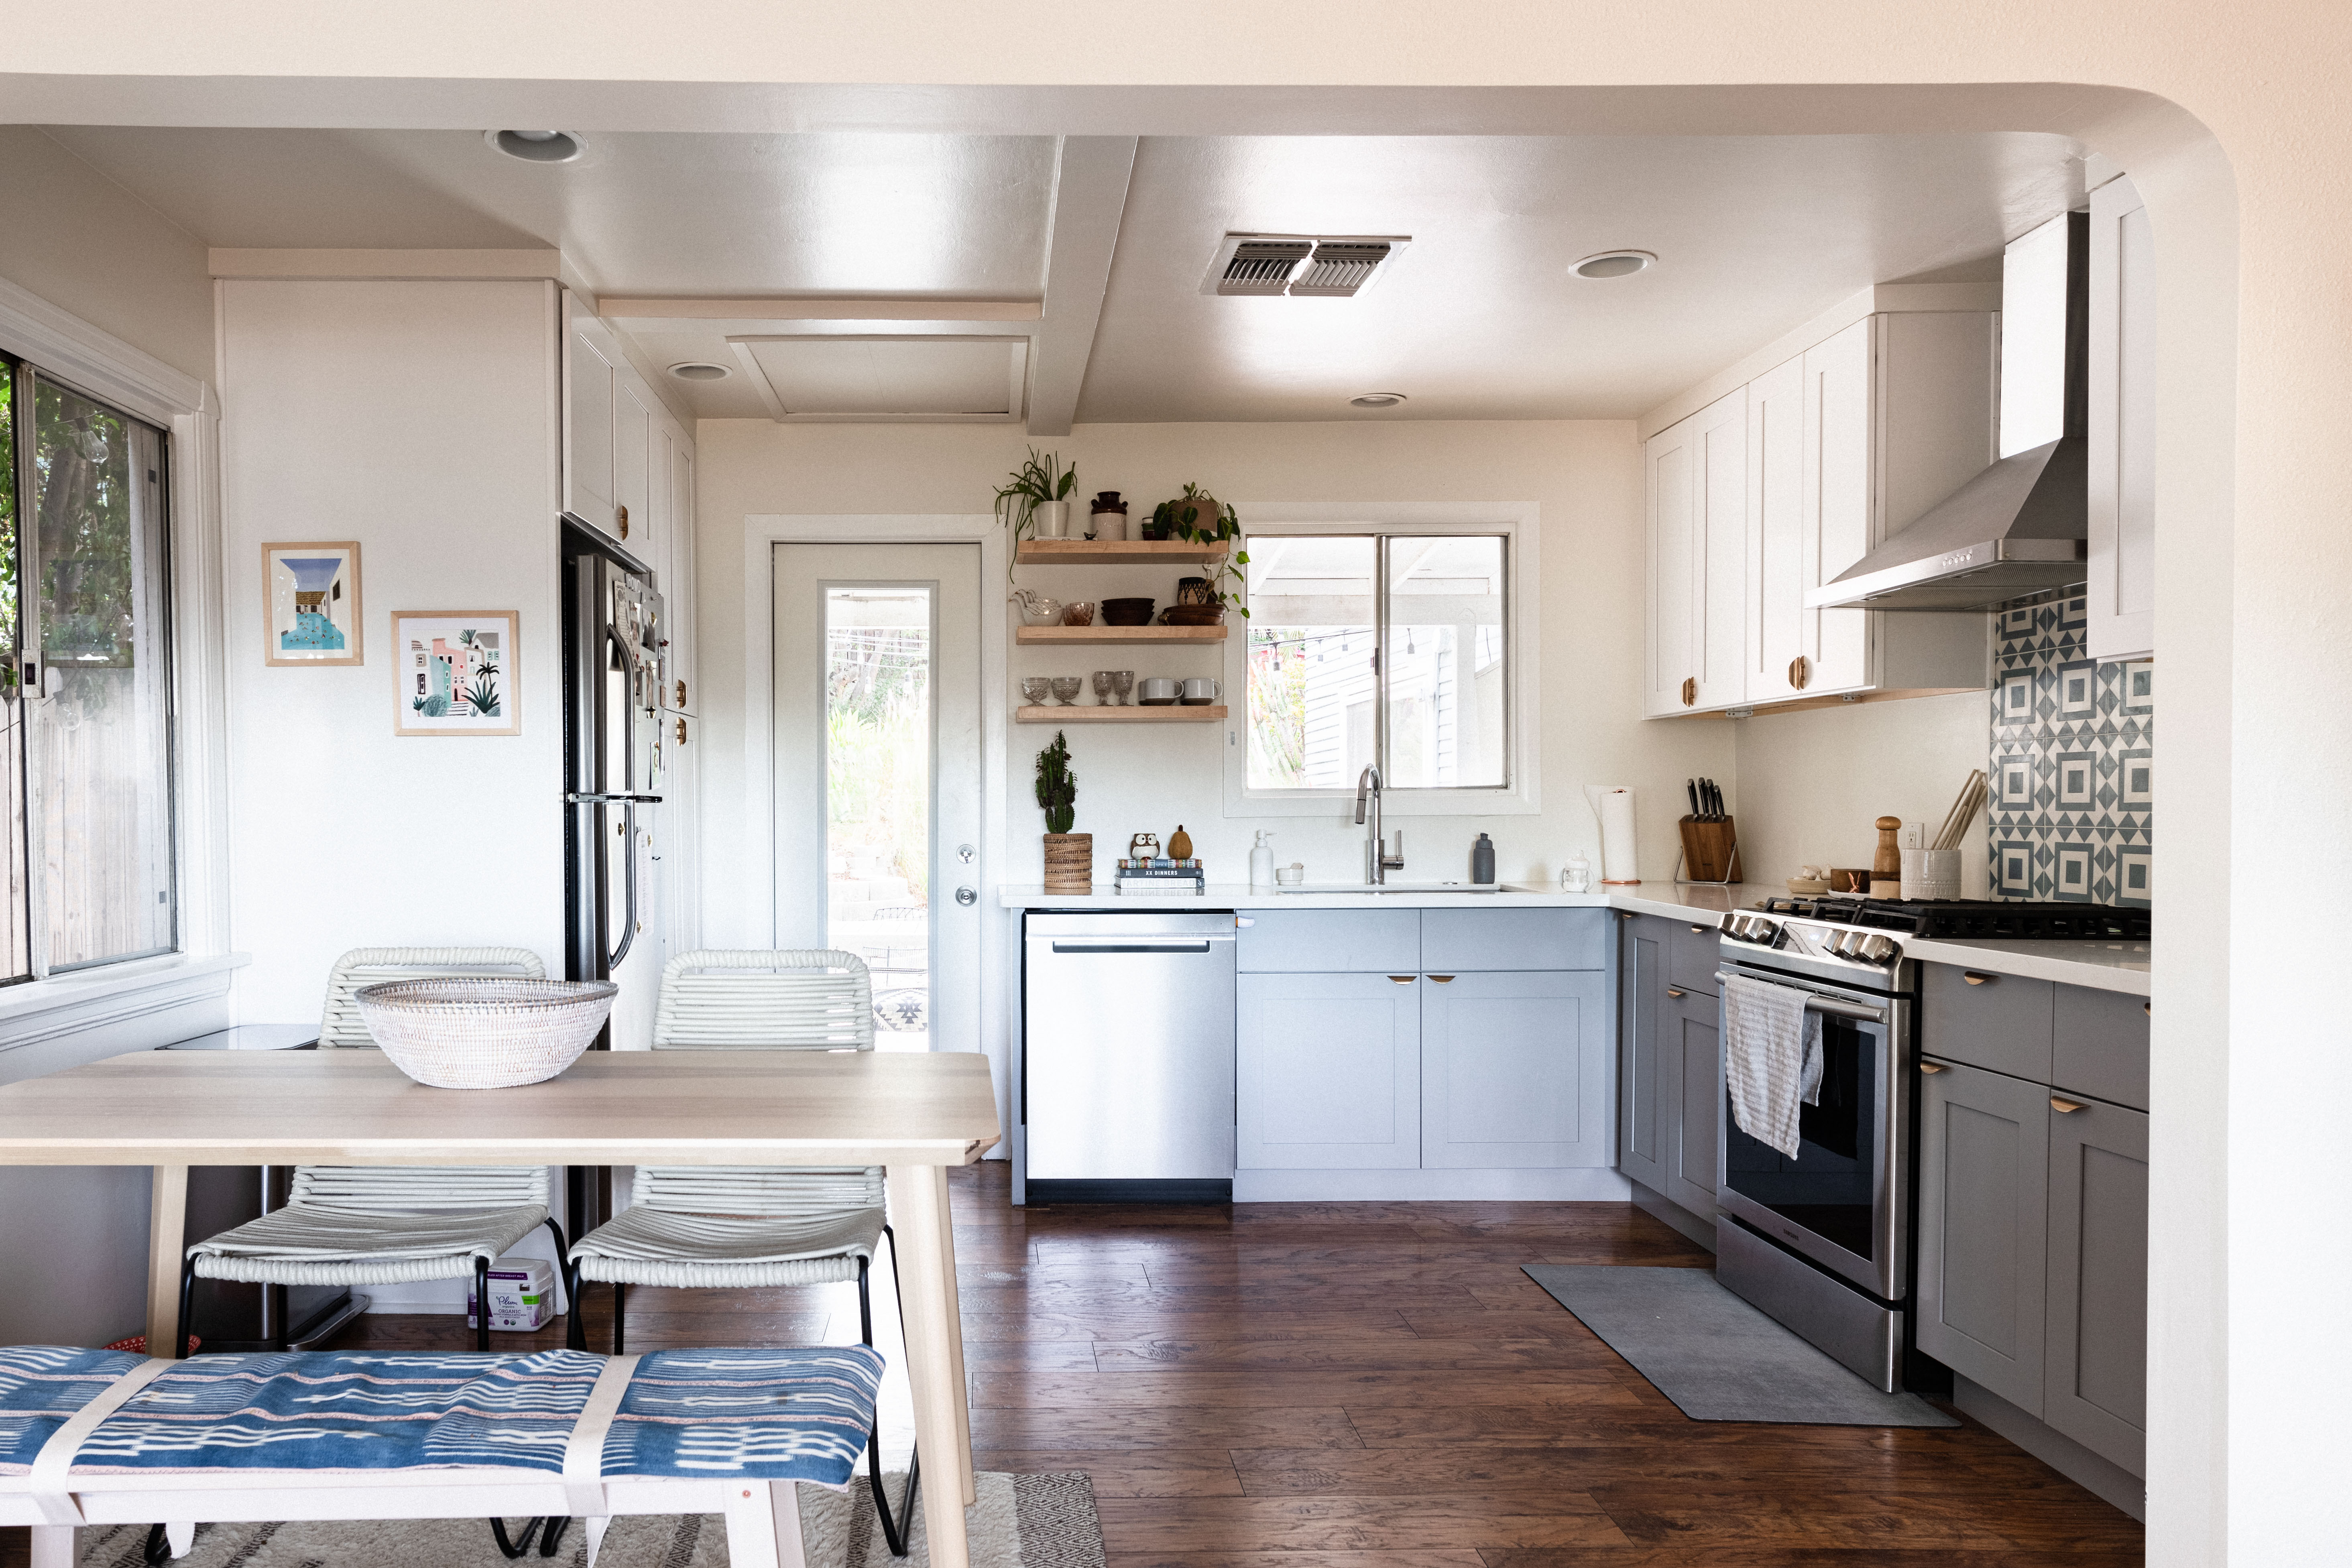 Vinyl Kitchen Flooring: What You Need to Know | Hunker